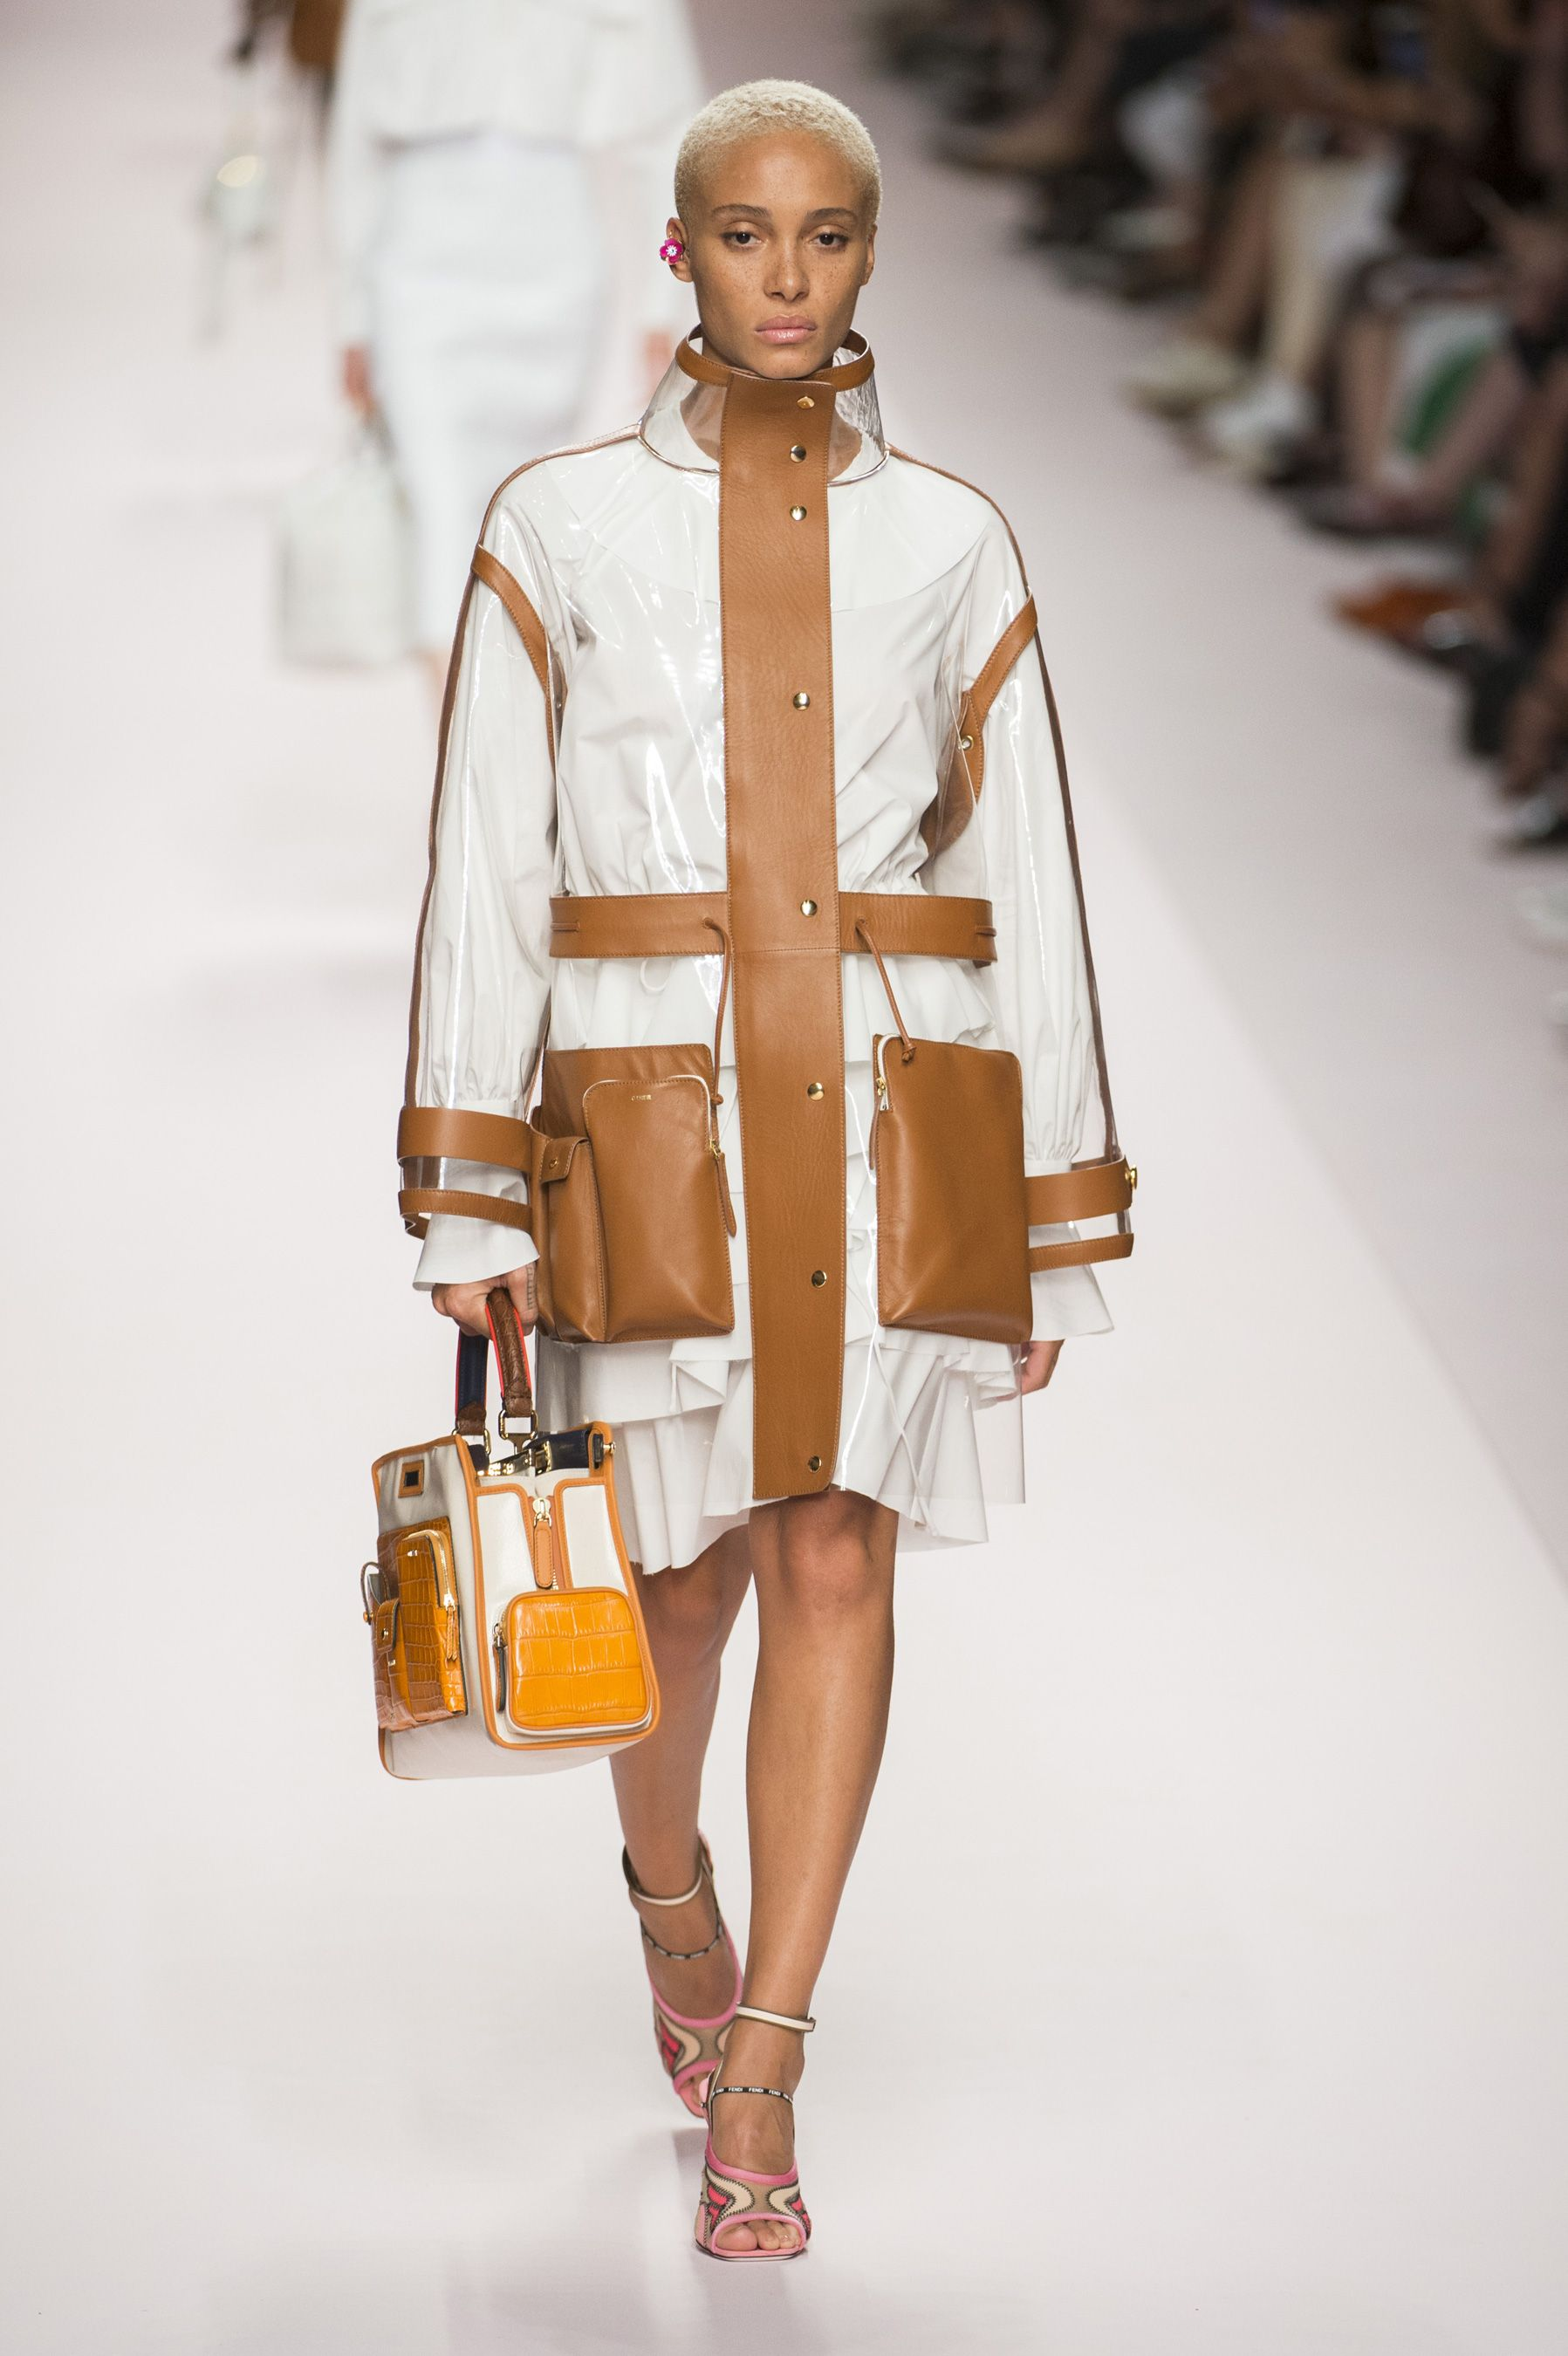 Fendi, Fendi SS 19, Fendi women, MFW, MFW SS 19, MFW 2019, Milano fashion week, Milano, Fashion week, real time women SS 19, sfilate, primavera estate 2019